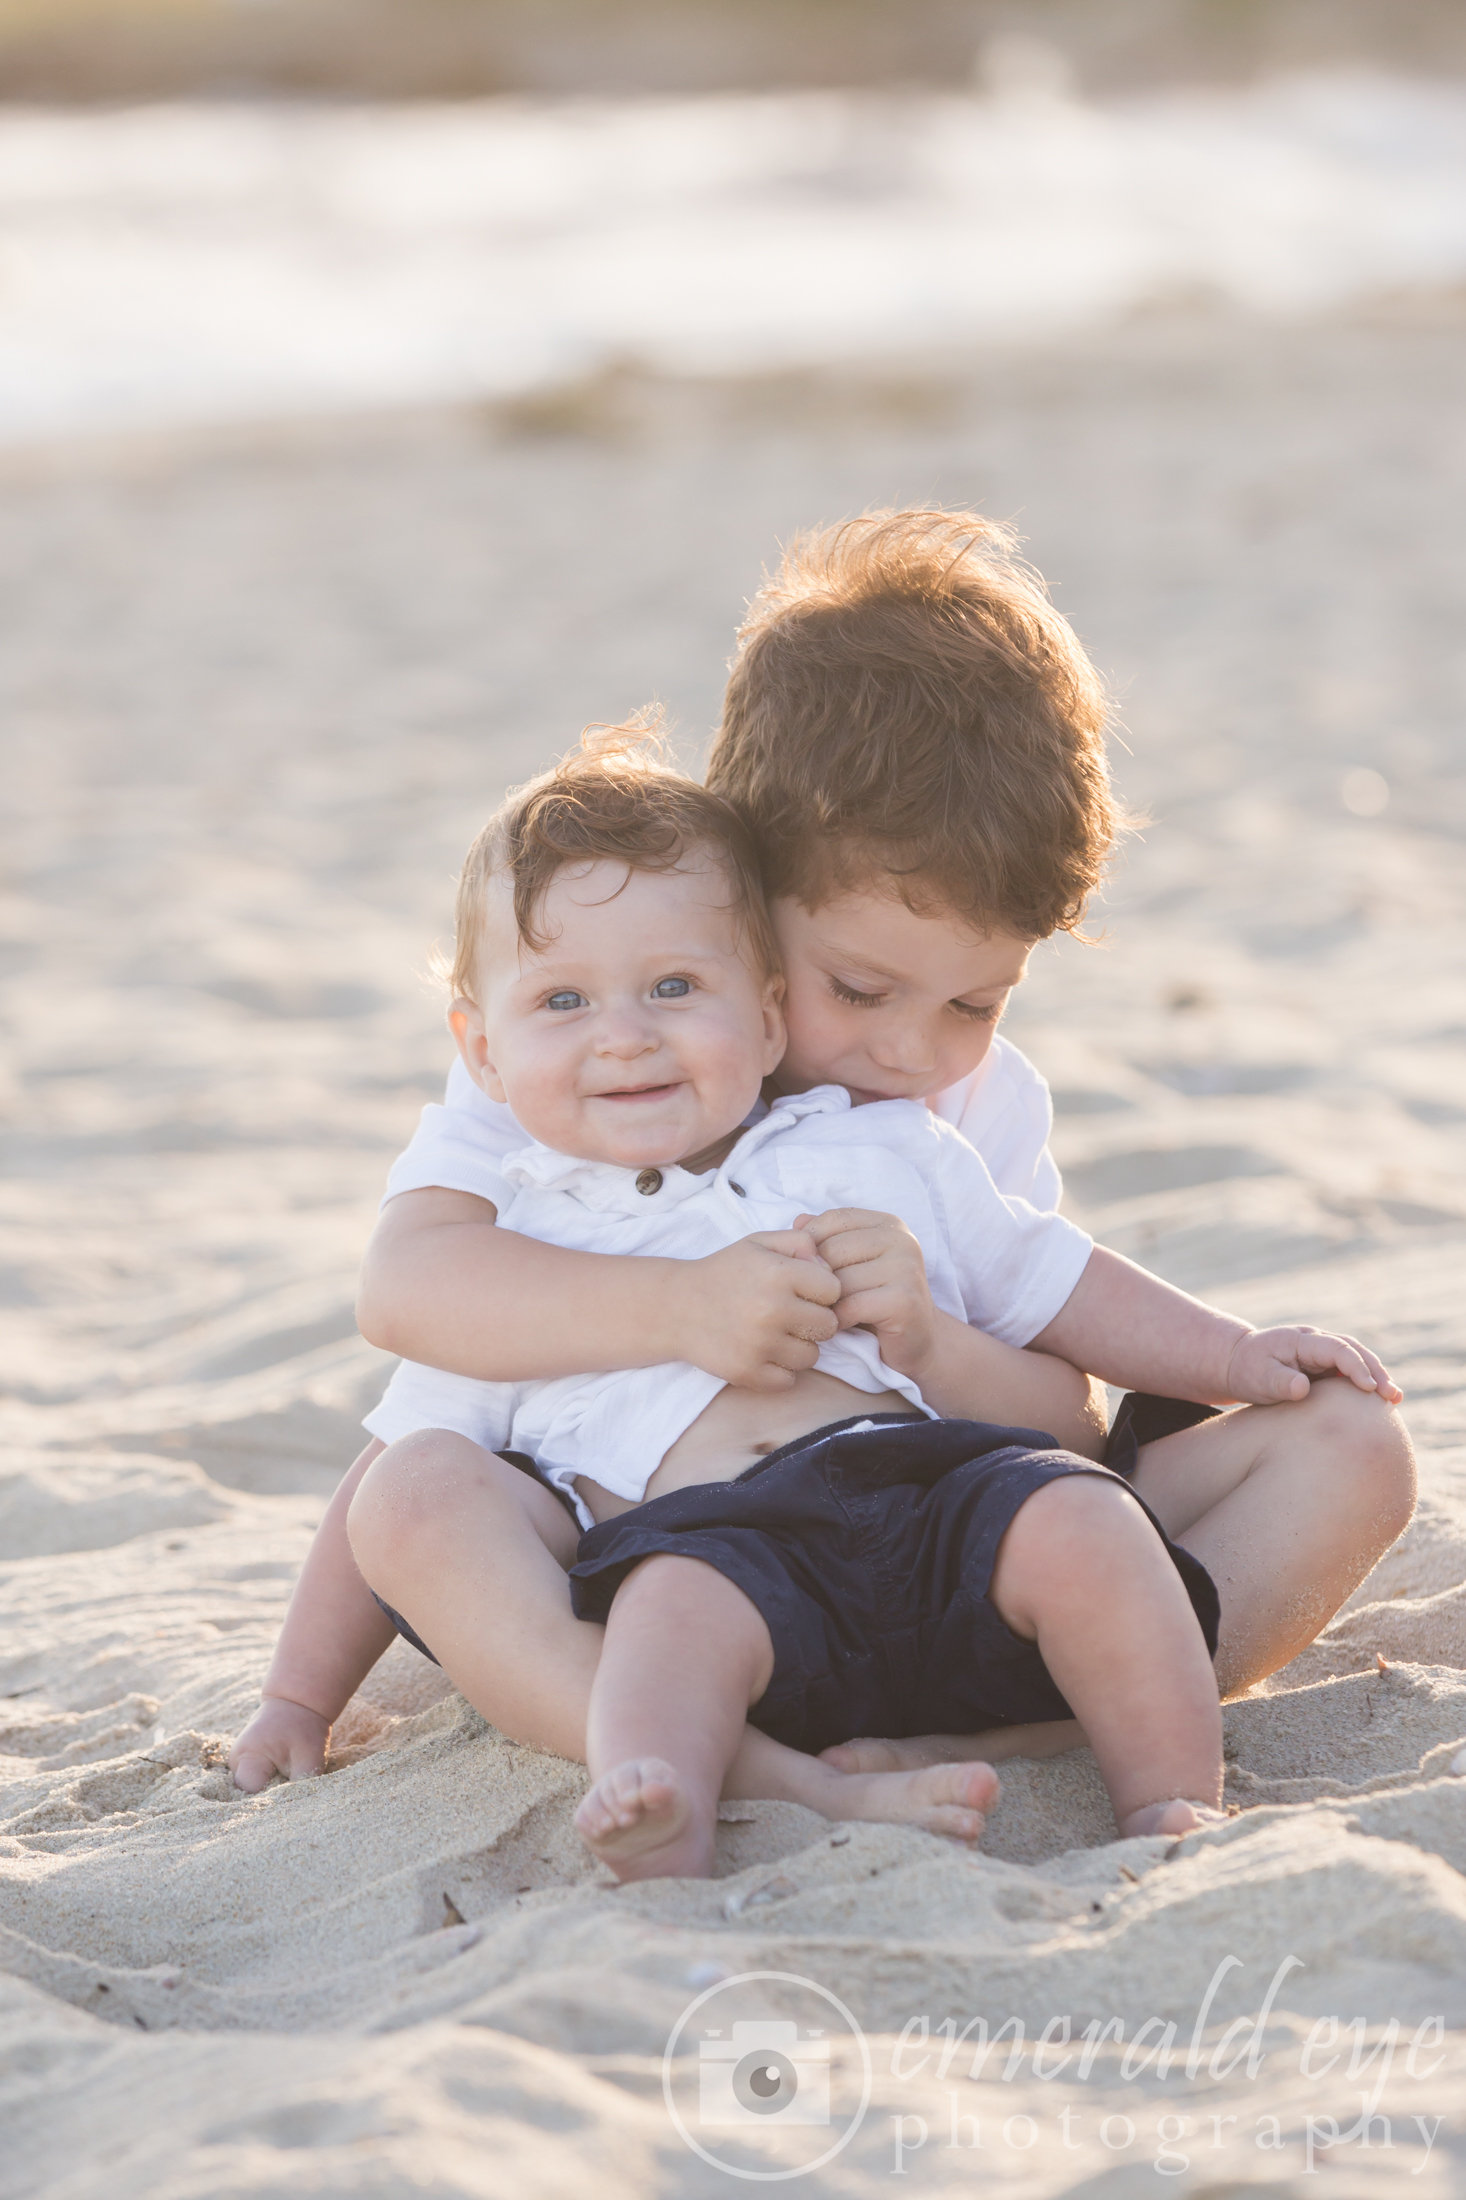 Big brother holds little brother in the sand with big smiles during a Family session on Cape Cod Massachusetts